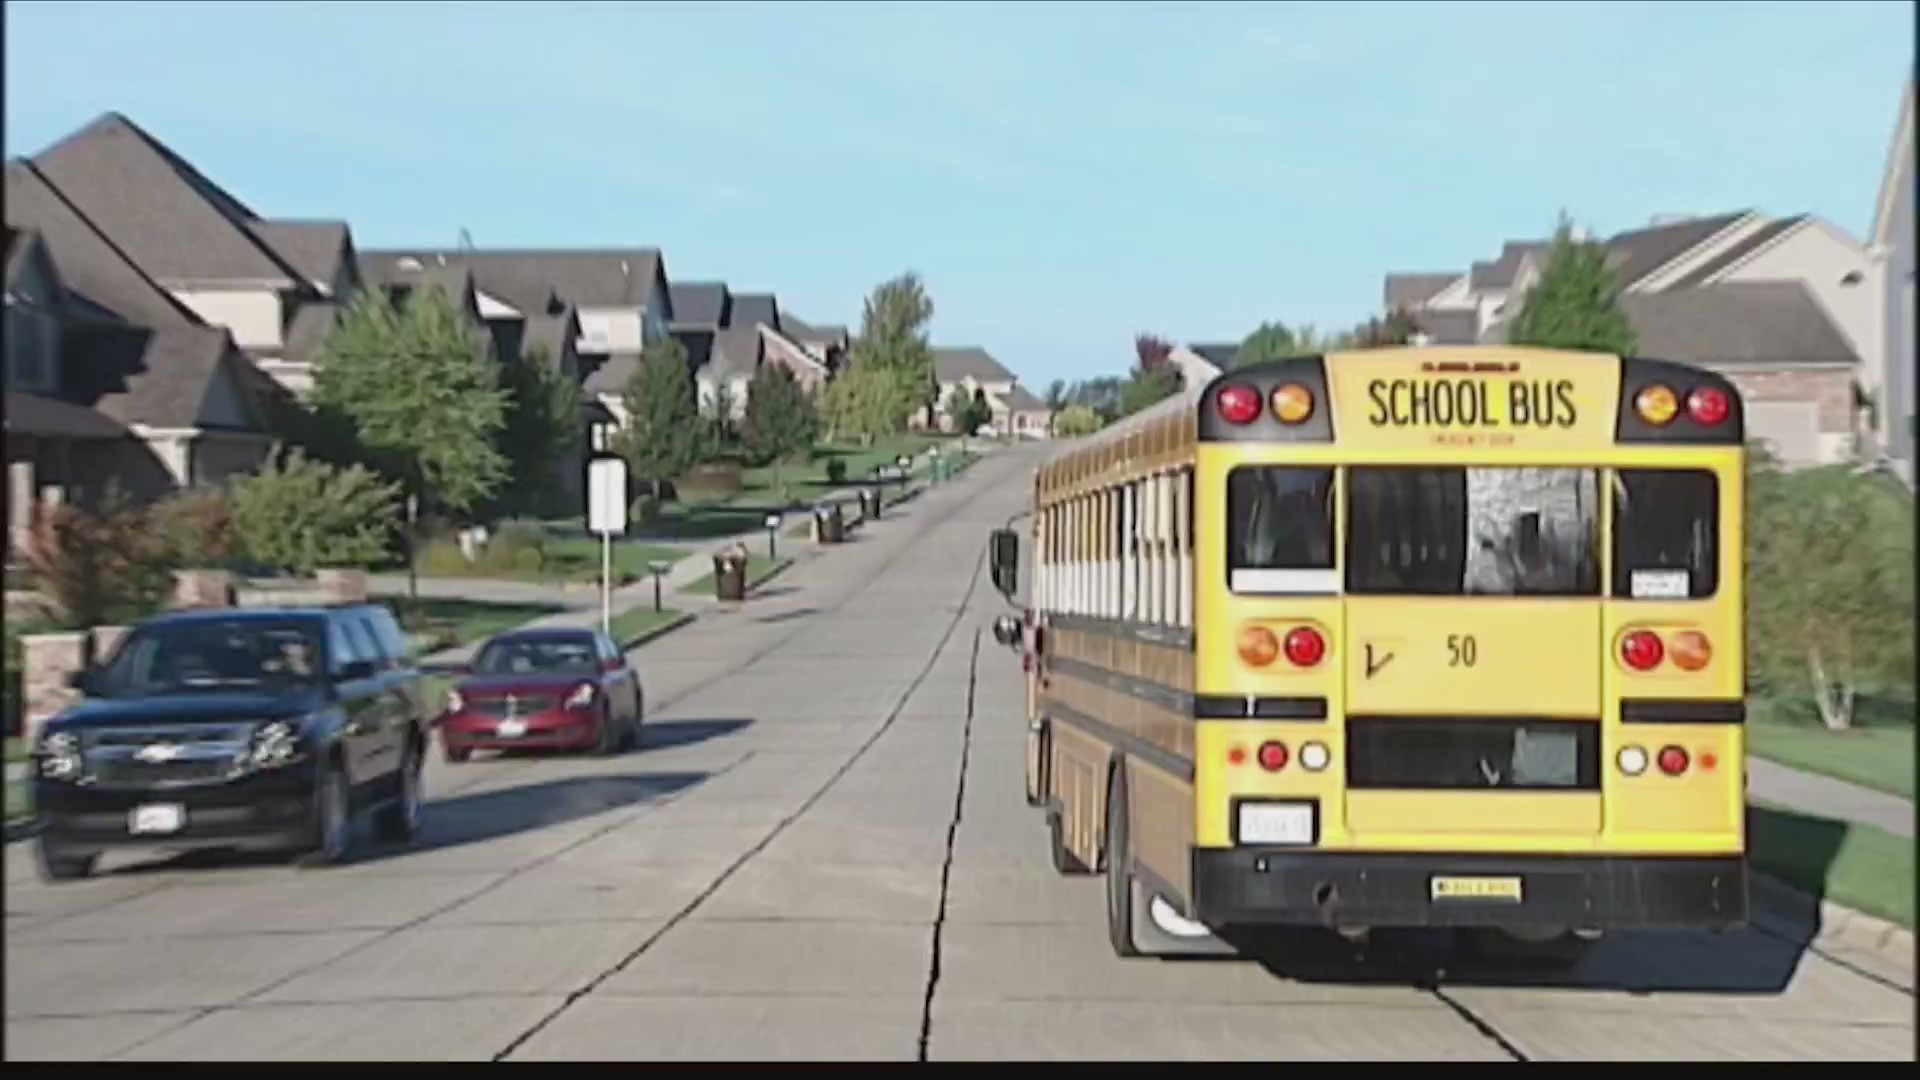 Drivers will be fined for failing to stop for school buses